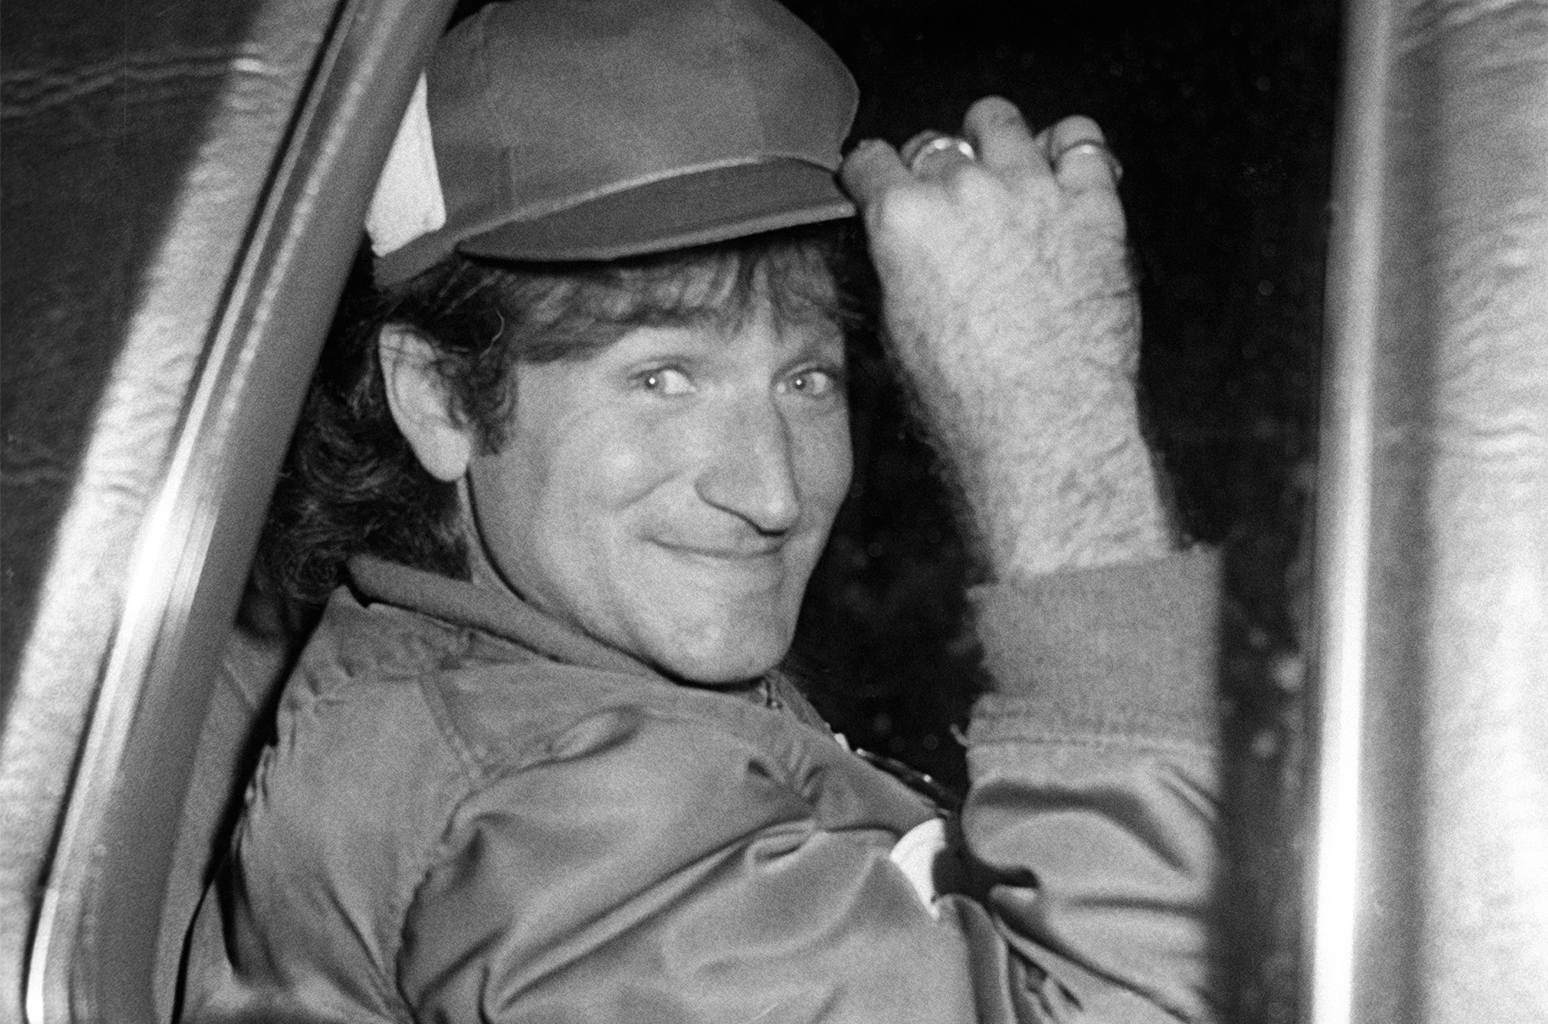 Robin-Williams-car-1979-billboard-1548